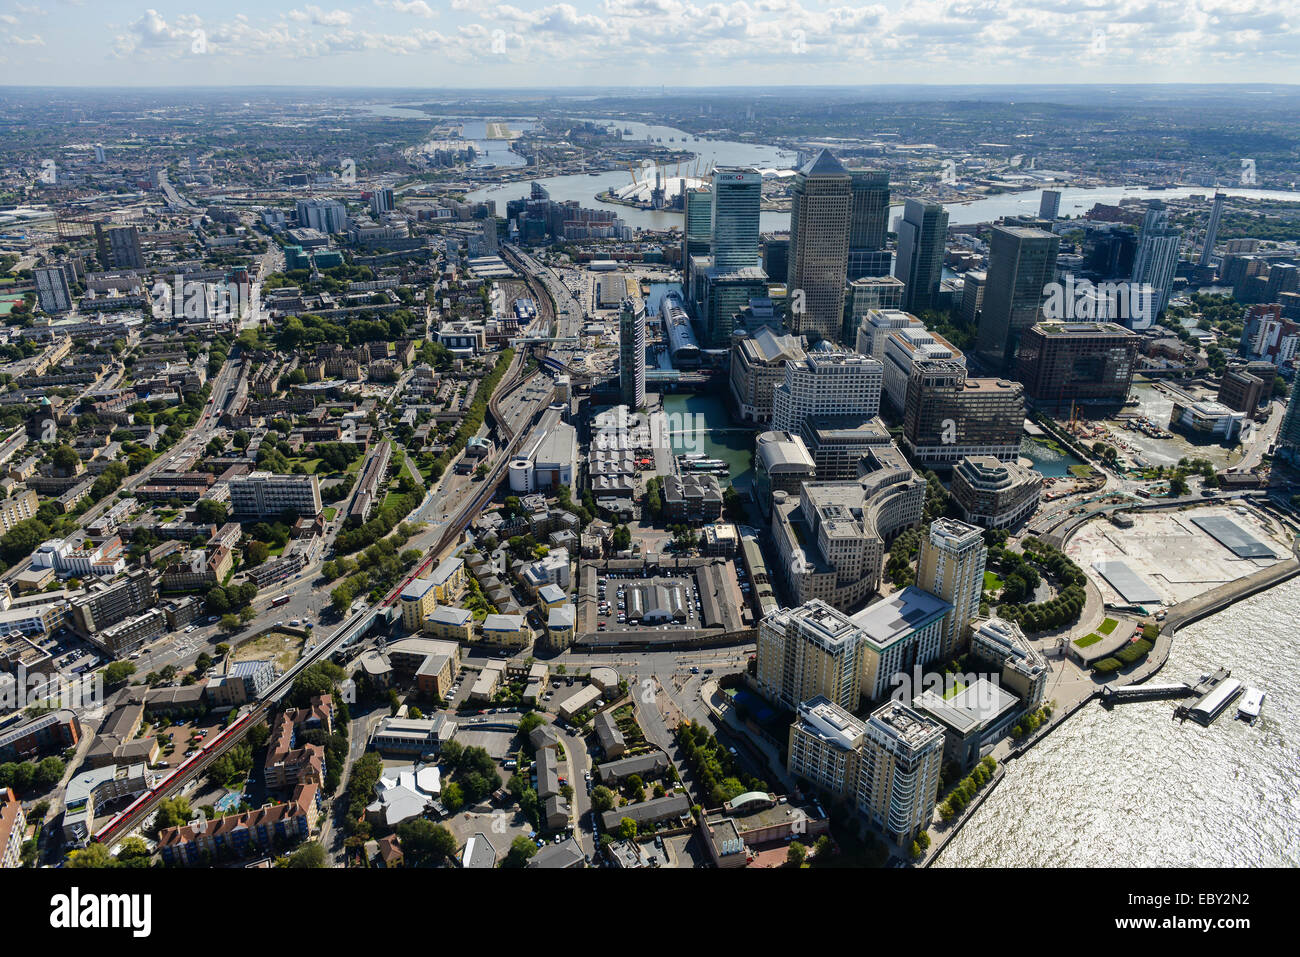 An aerial view of Canary Wharf and surroundings looking east - Stock Image